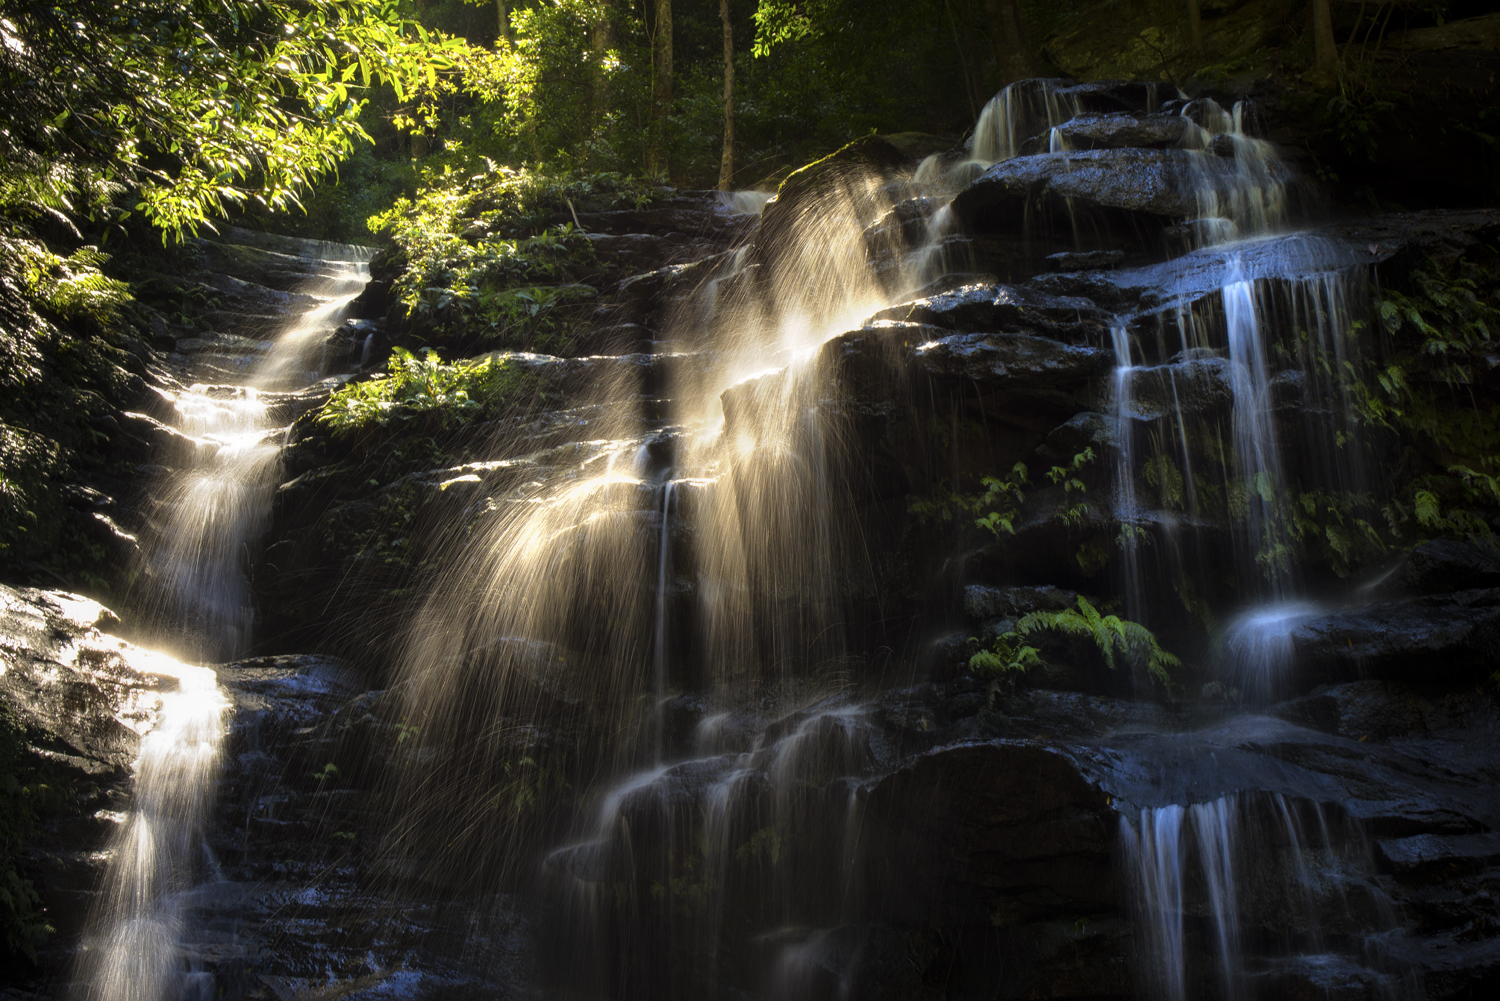 Waterfall in sunlight